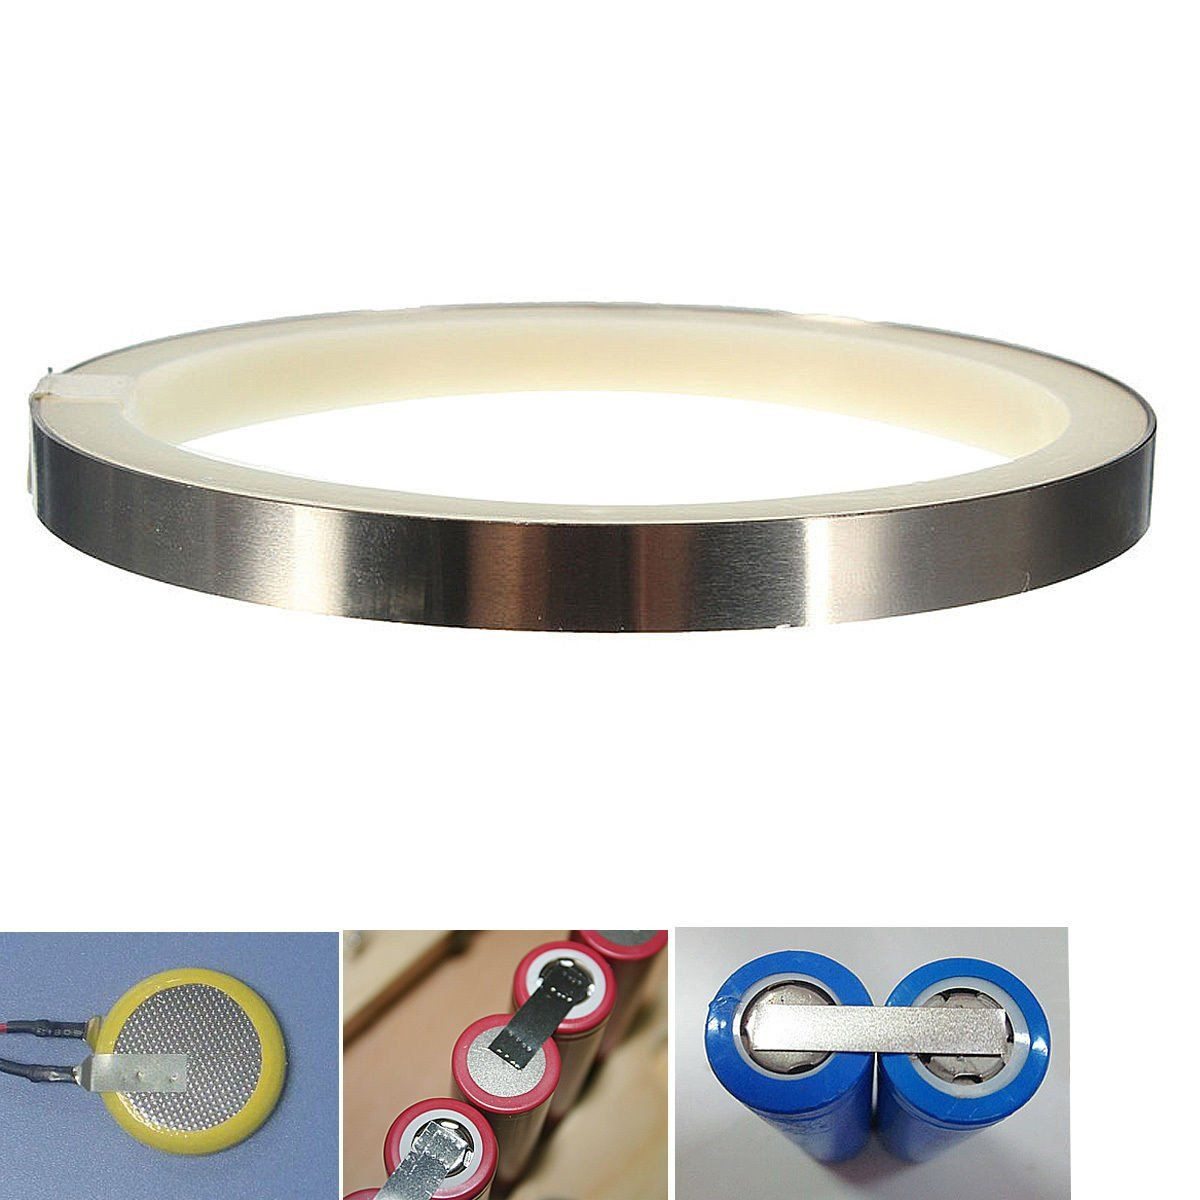 2m 0 15x8mm Nickel Plated Steel Sheet Strap Tape Strip For Battery Spot Welding Descrptiion Material Nickel Plated Steel Spc Steel Sheet Spot Welding Plating